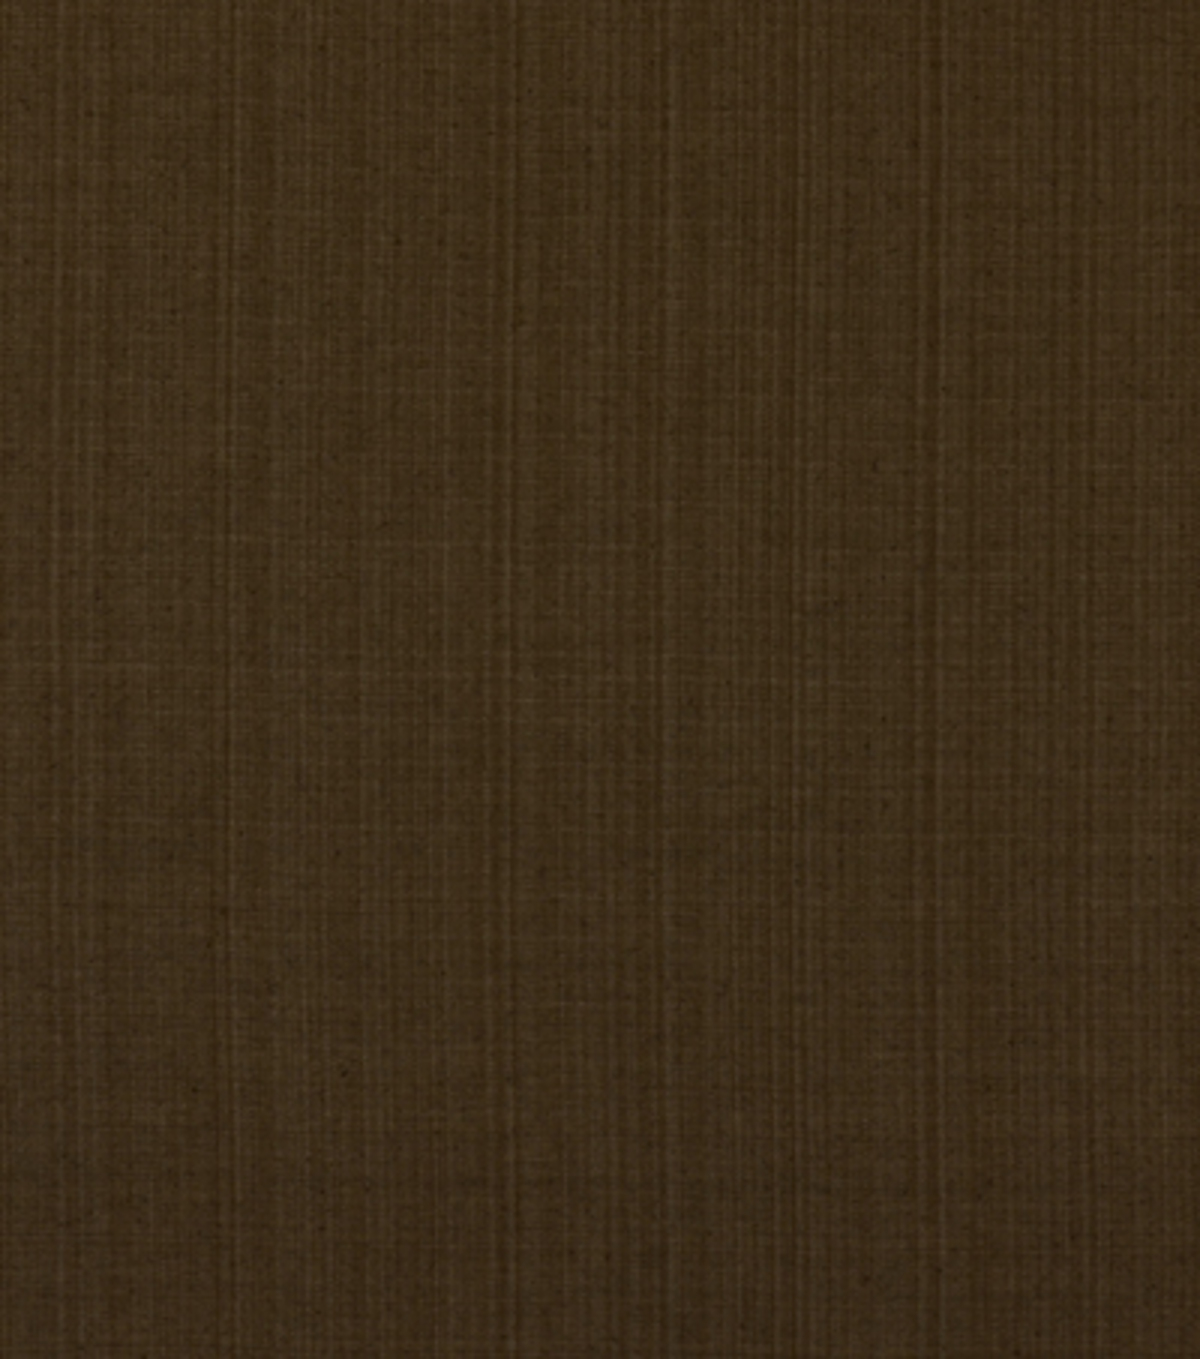 Home Decor 8\u0022x8\u0022 Fabric Swatch-Covington Aurora 638 Plantation